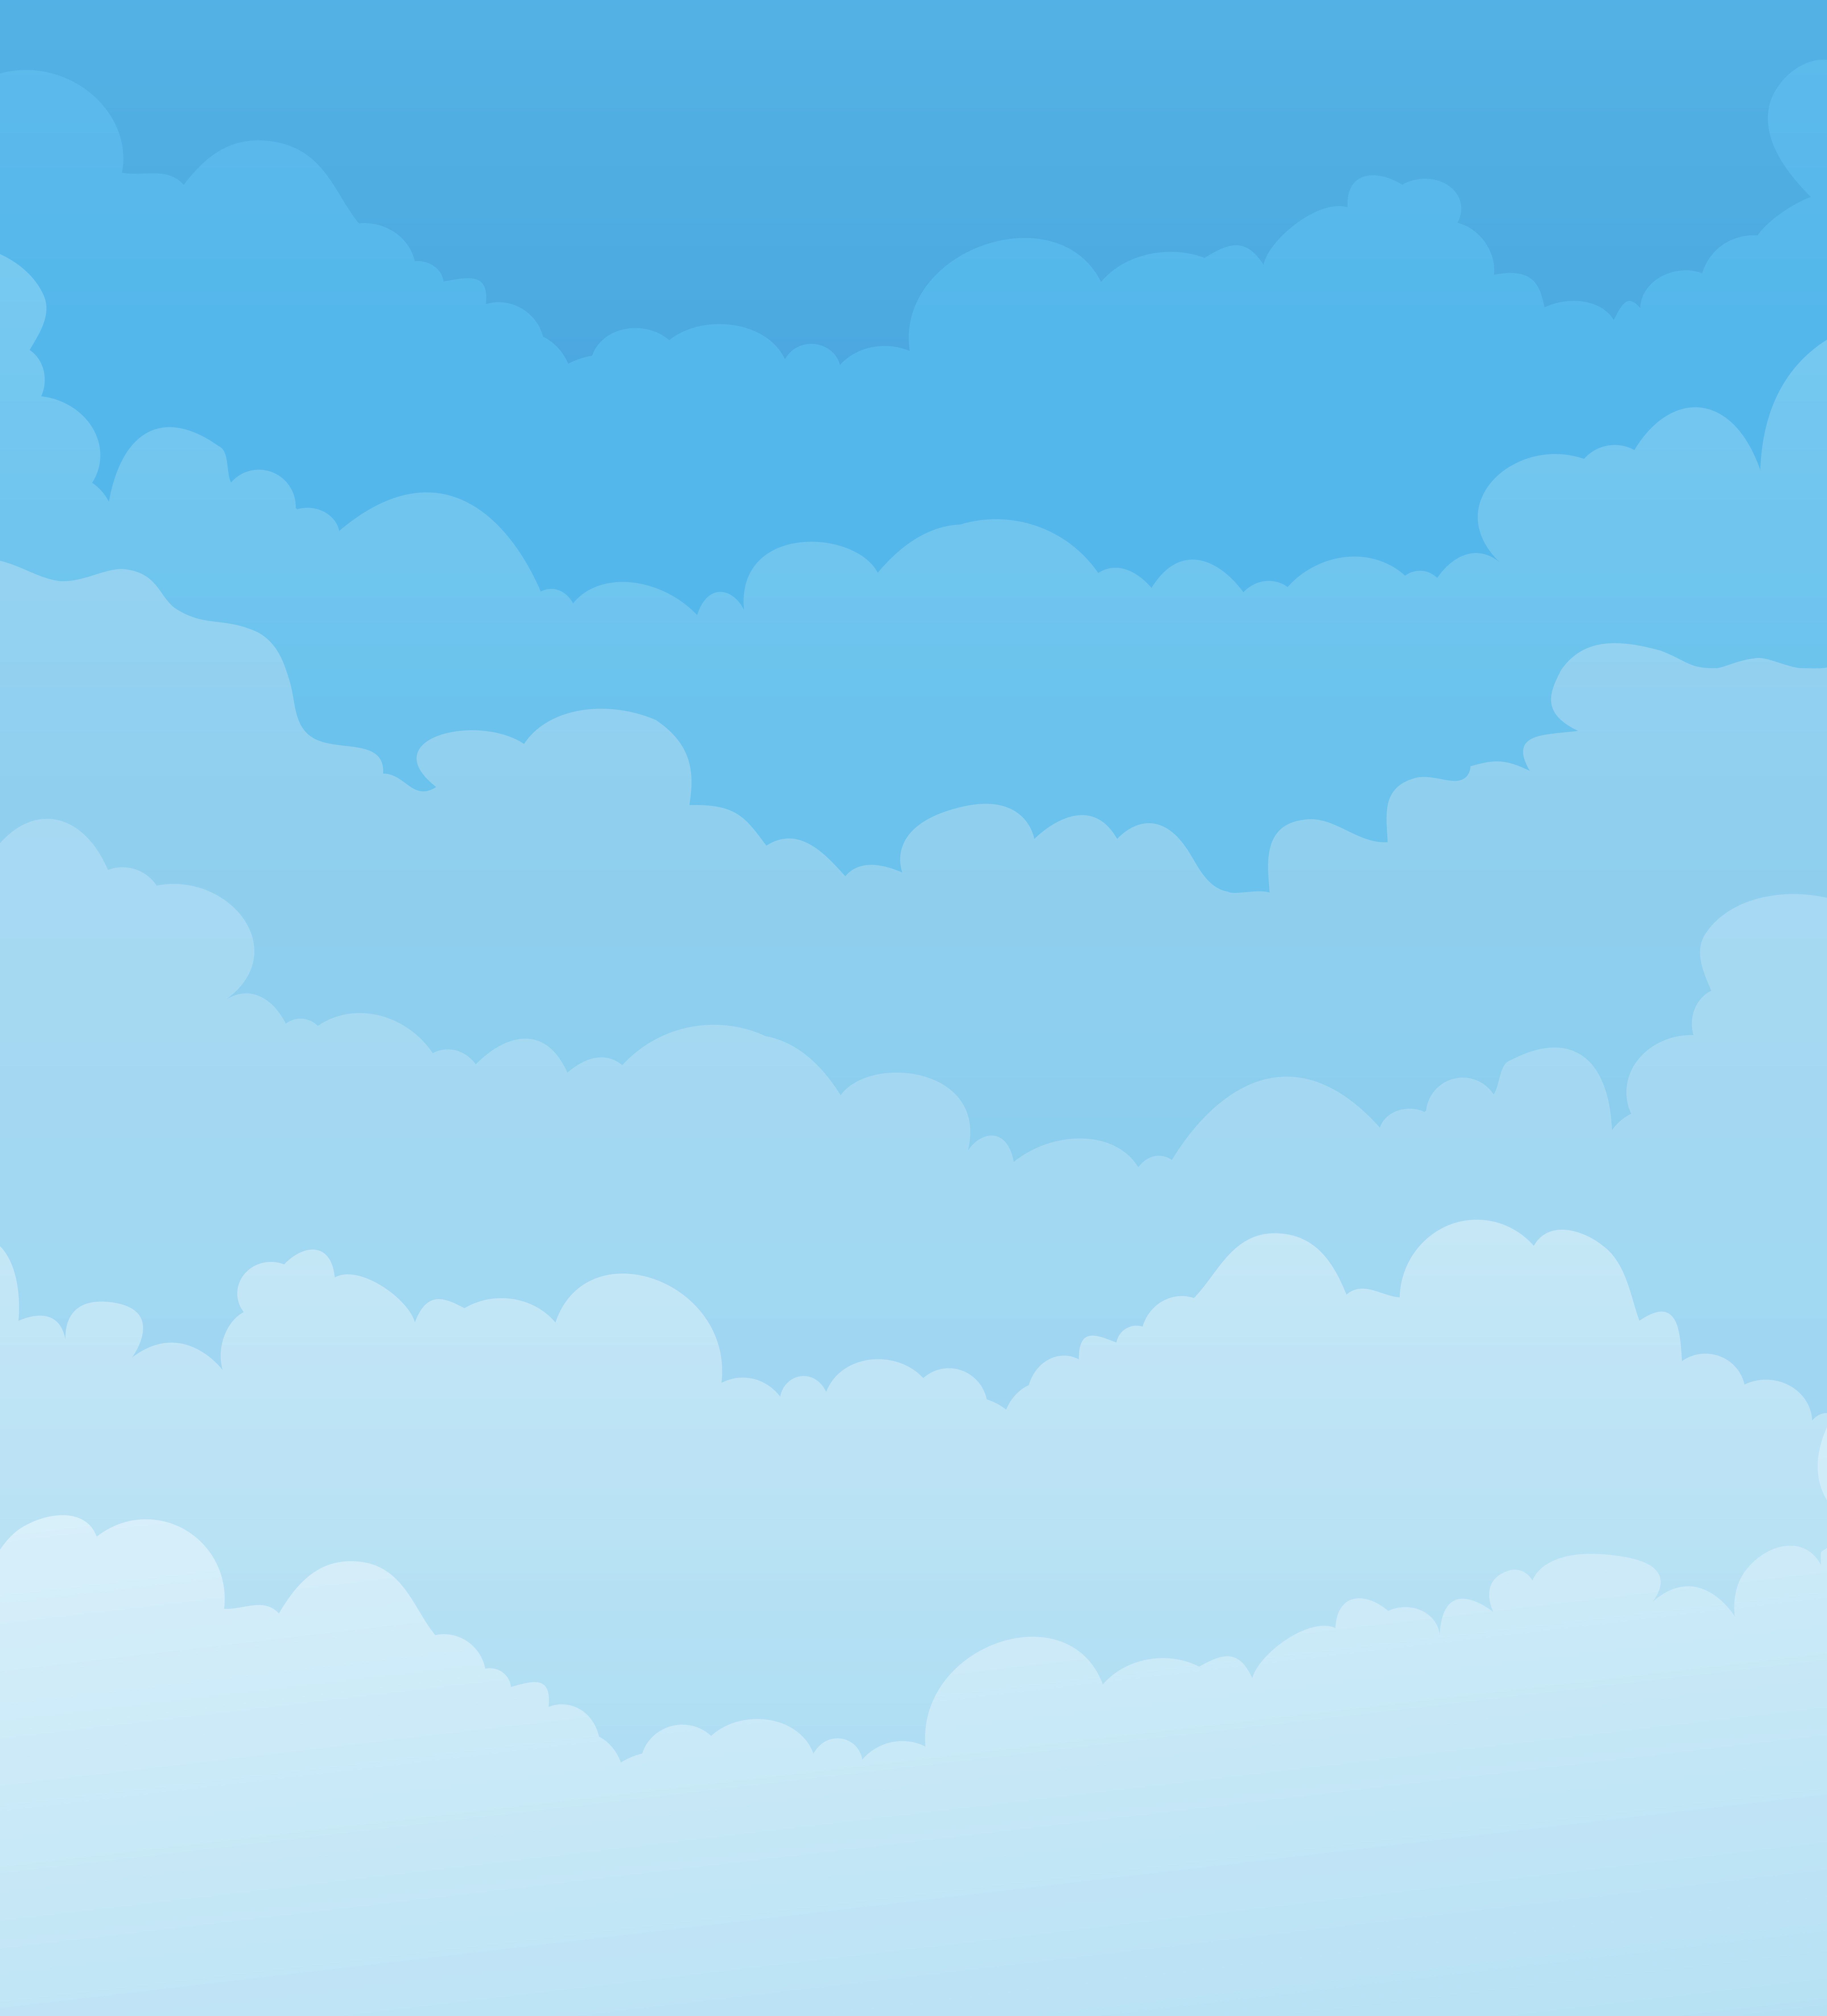 sky background with clouds layers download free vector art stock